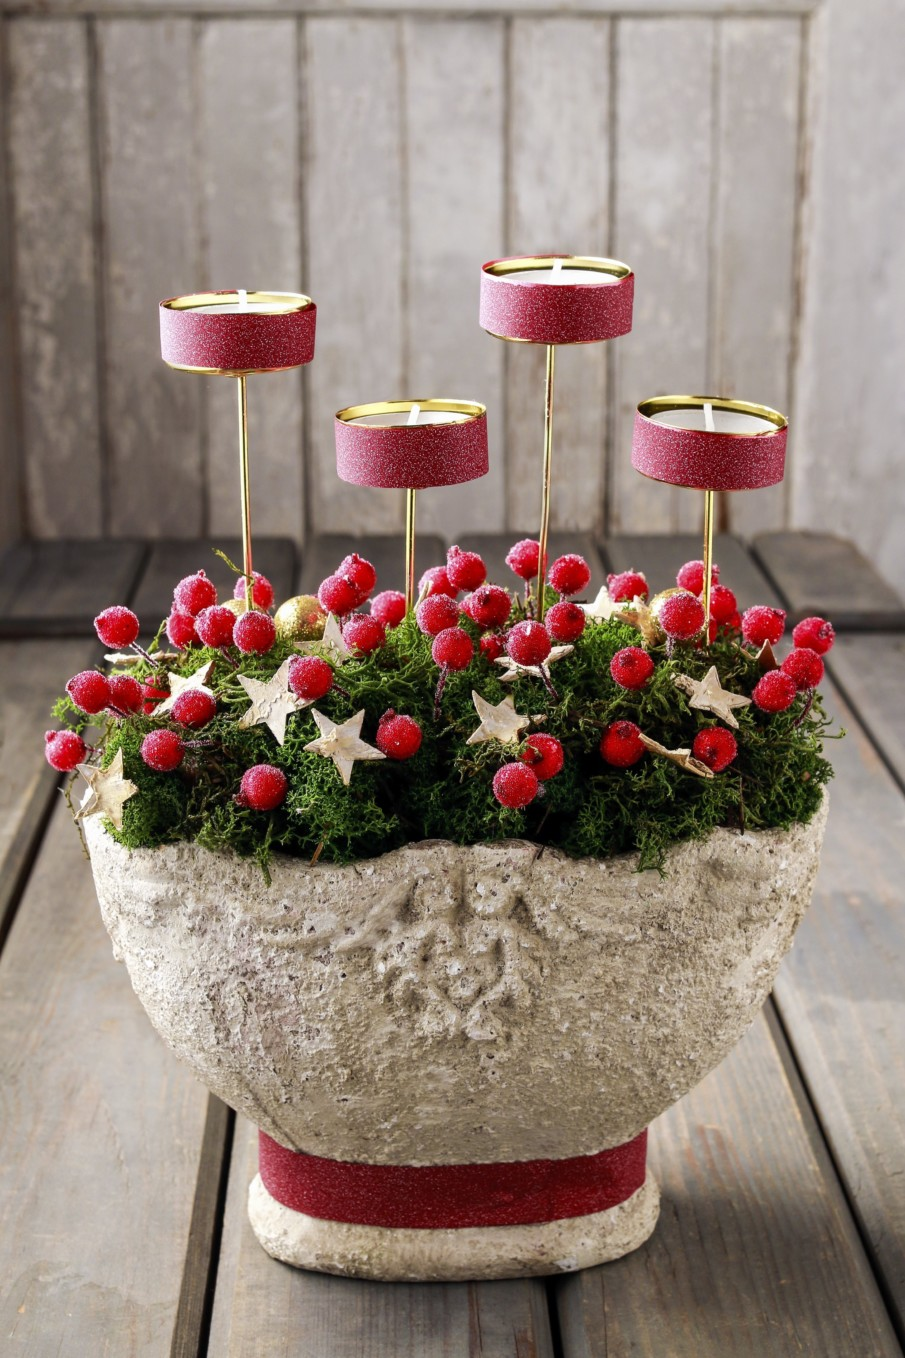 Centerpieces with candles ideas with red votives, pine branches and red berries in decorative planter